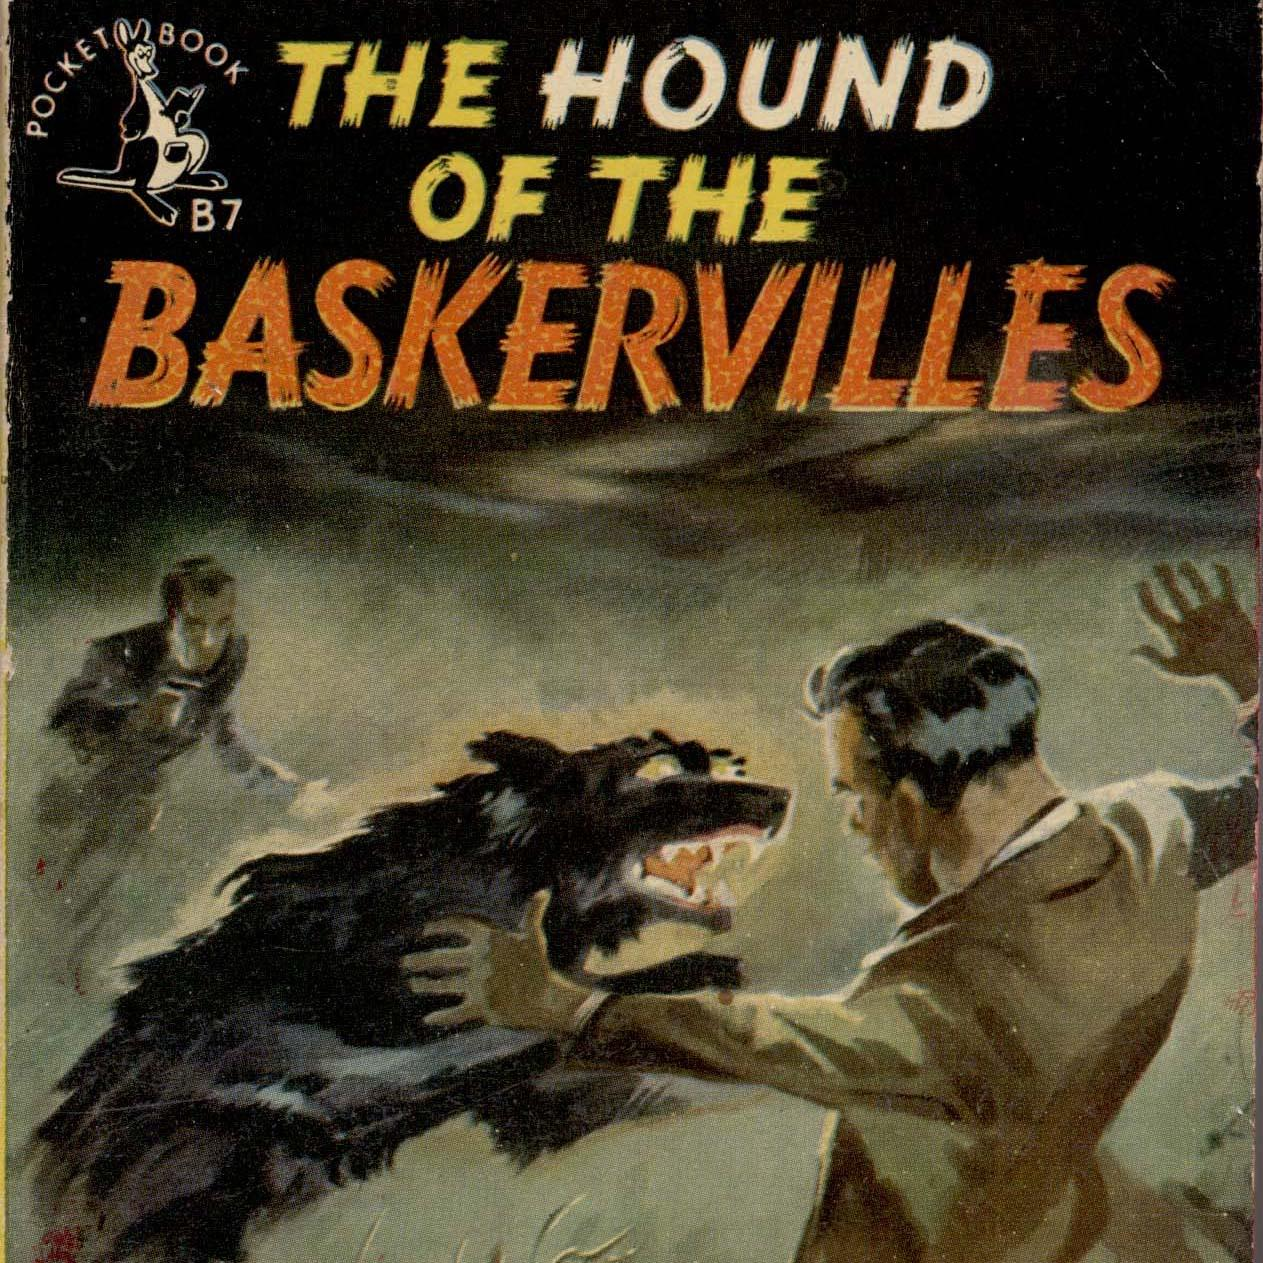 hounds of the baskervilles Download the hound of the baskervilles by sir arthur conan doyle it was the 3rd of the crime novels featuring the popular character of sherlock holmes.